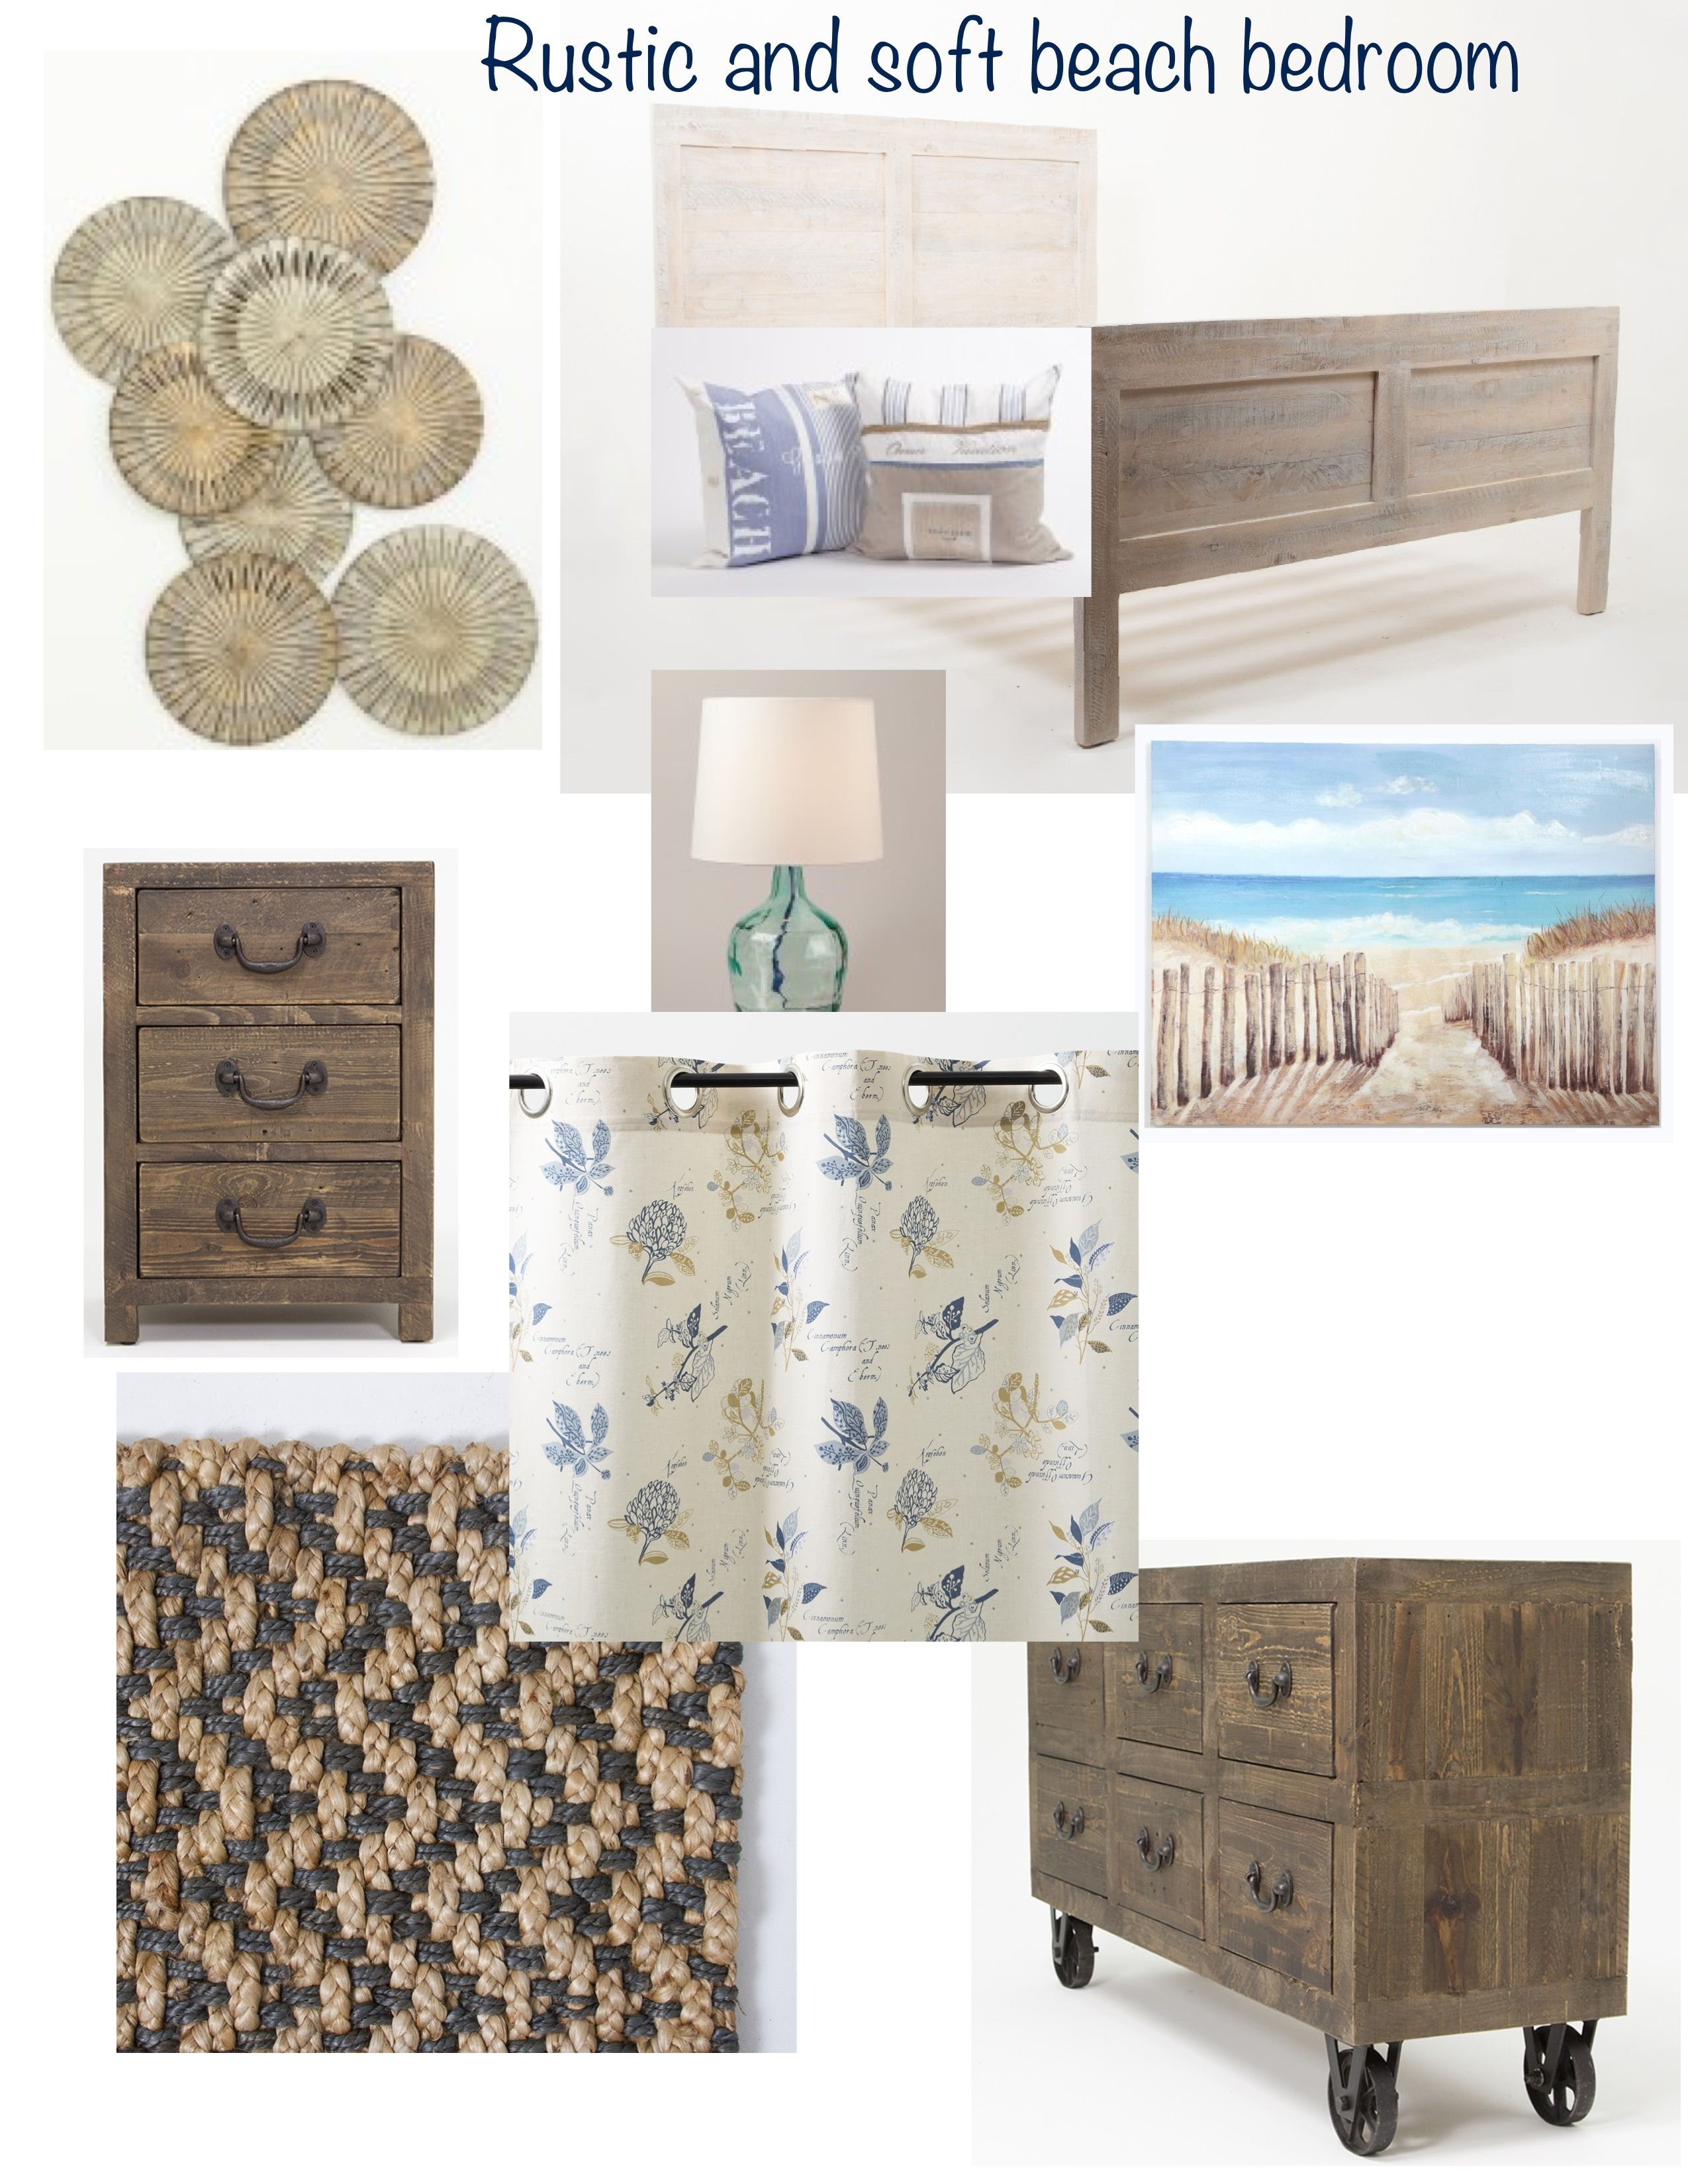 Ordinaire How To Create A Soft And Rustic Beach Themed Bedroom.